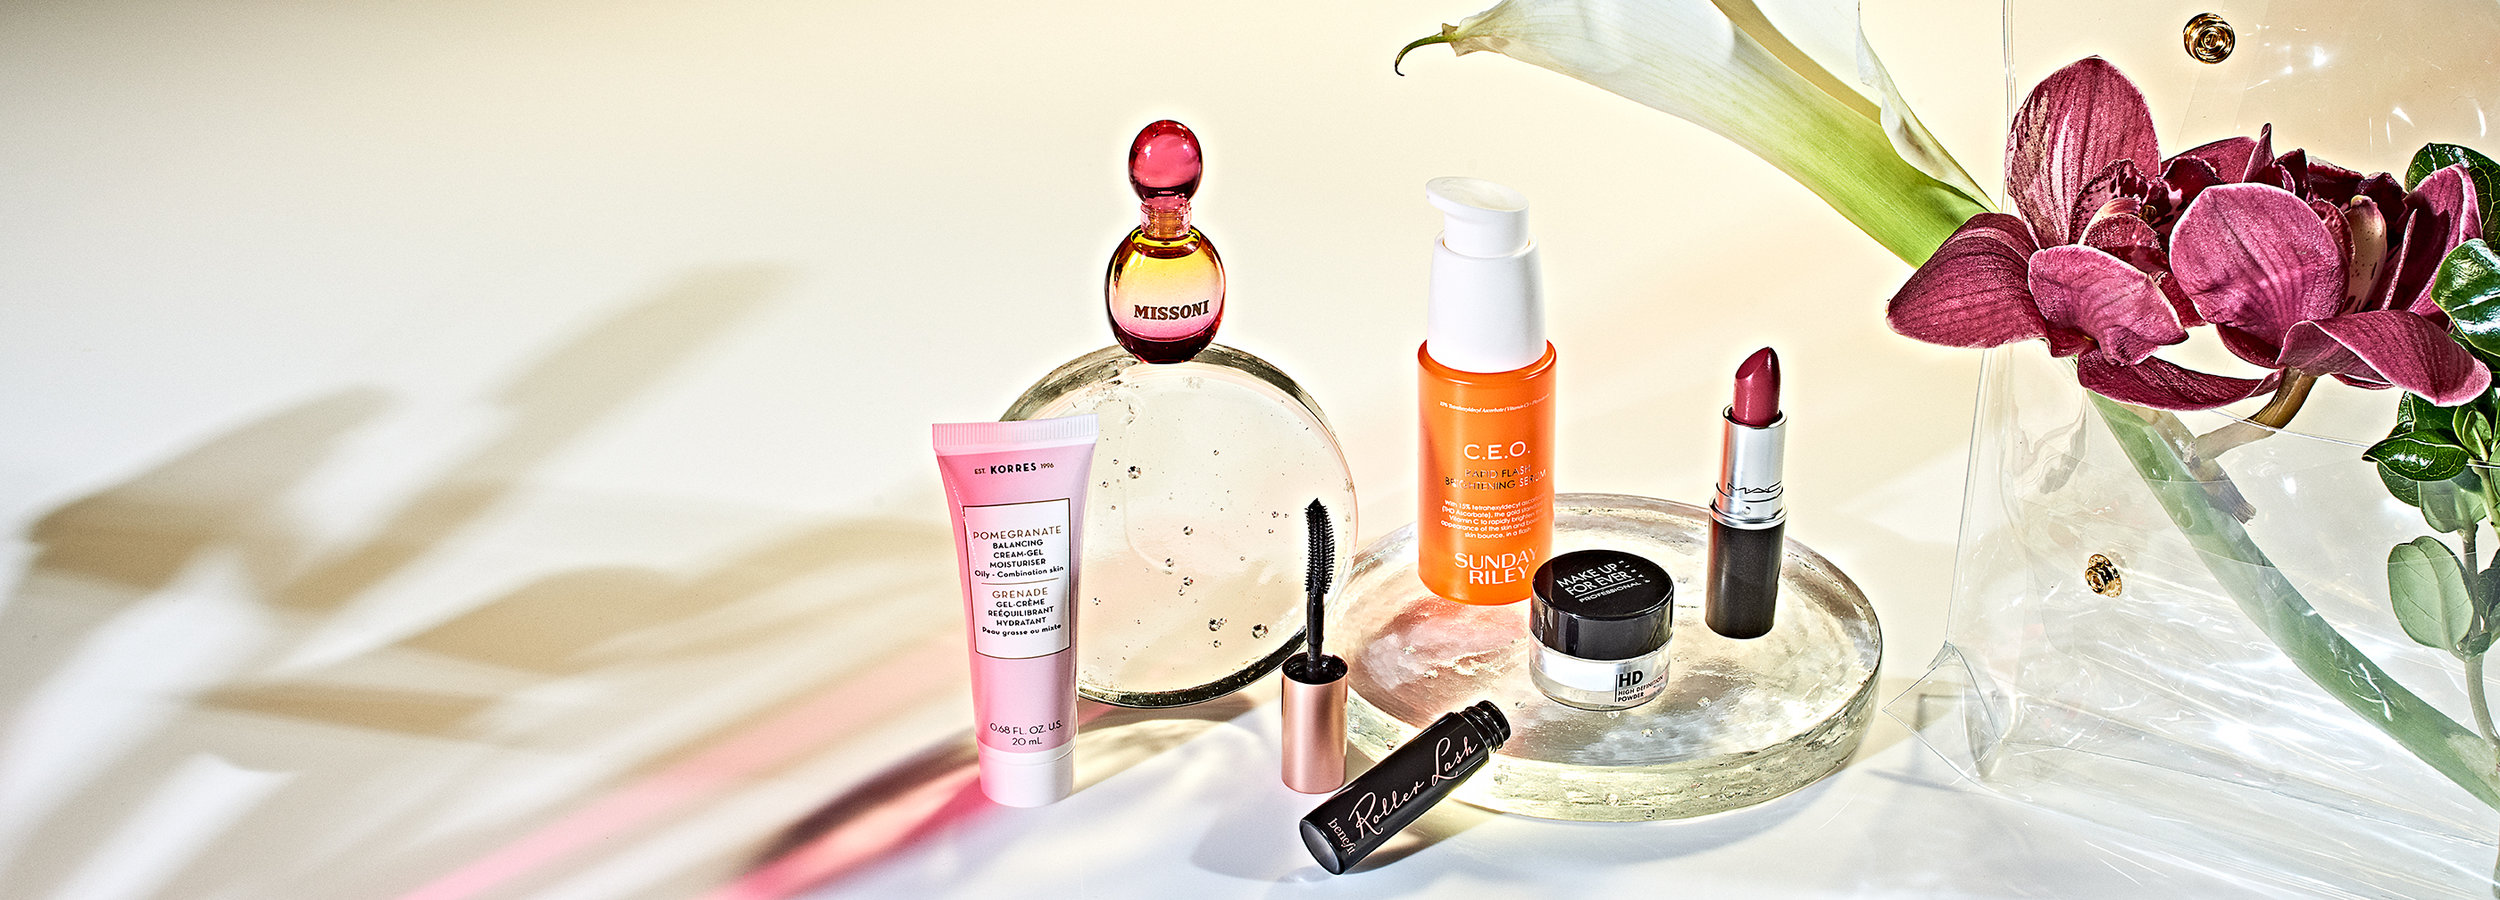 More Faces Of Cosmetic Packaging In 2019 Trends